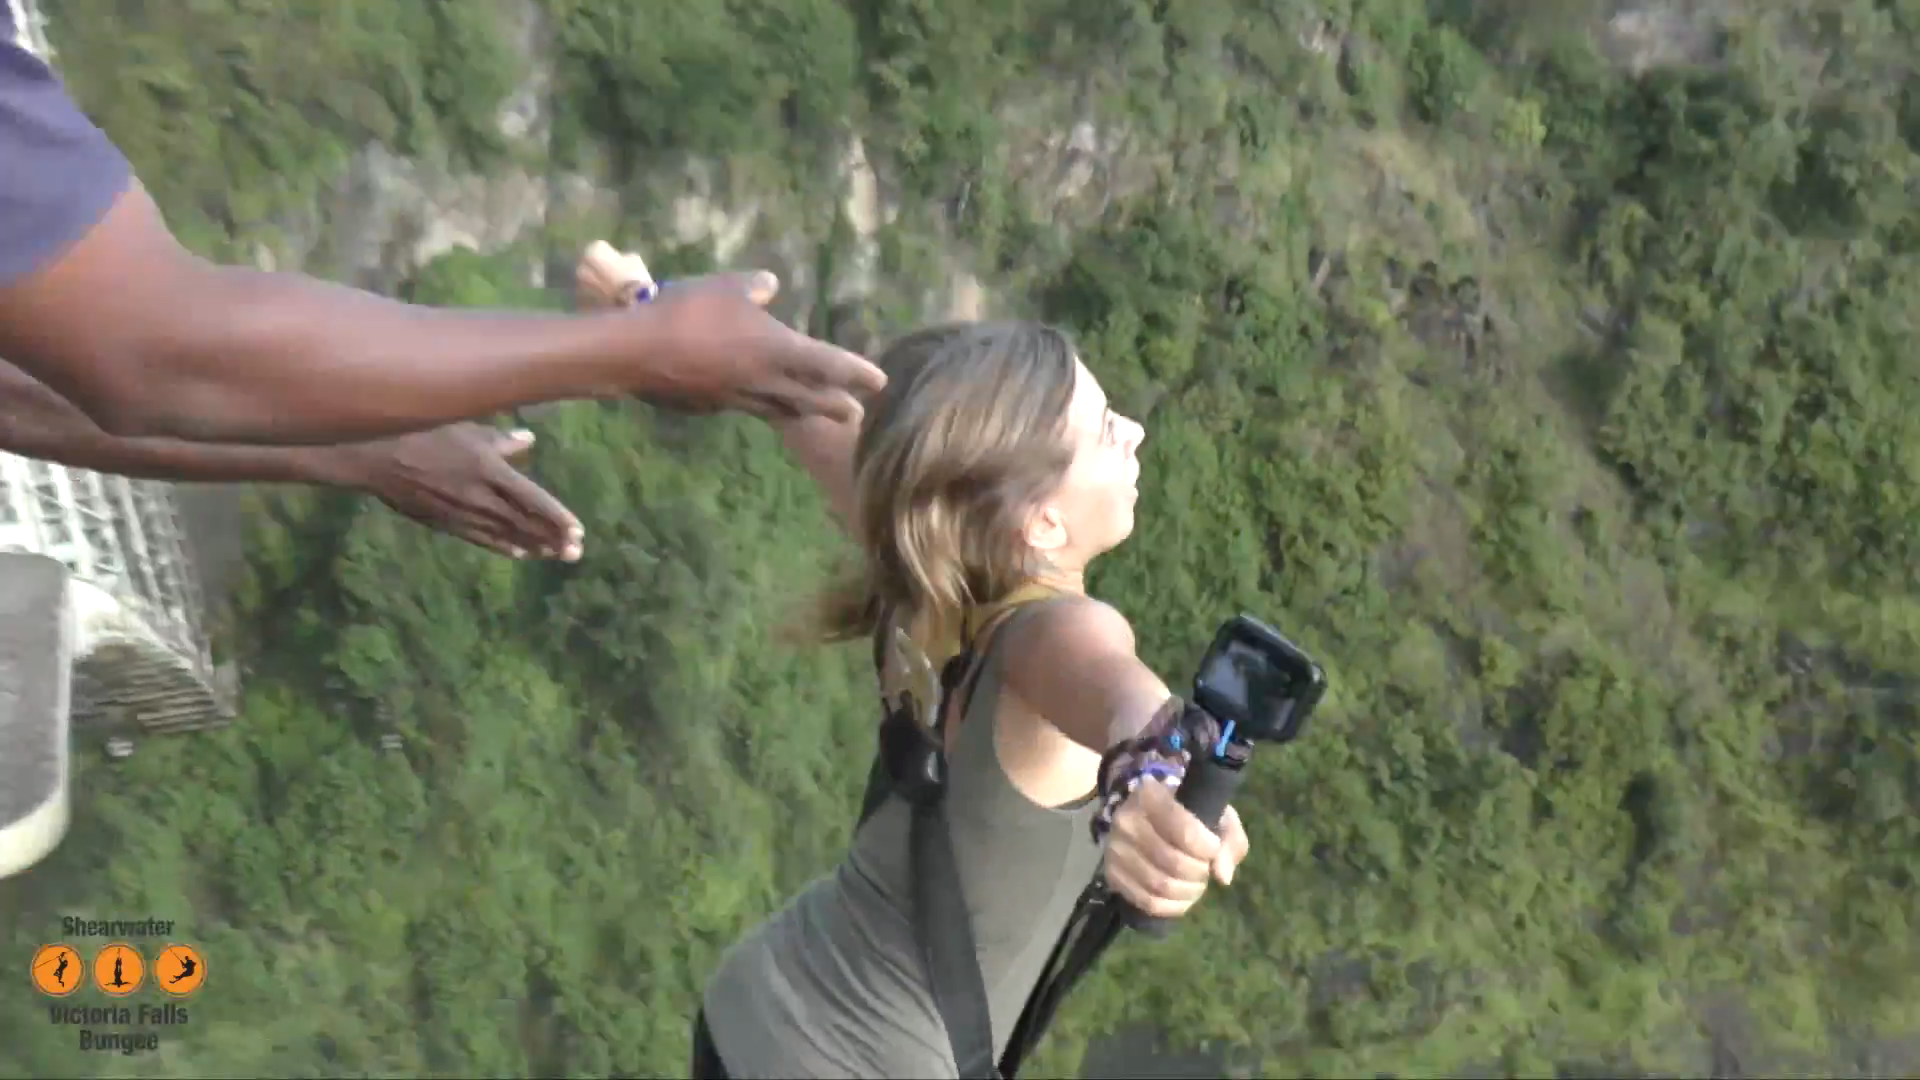 Bungee Jumping from the Bridge of Victoria Falls